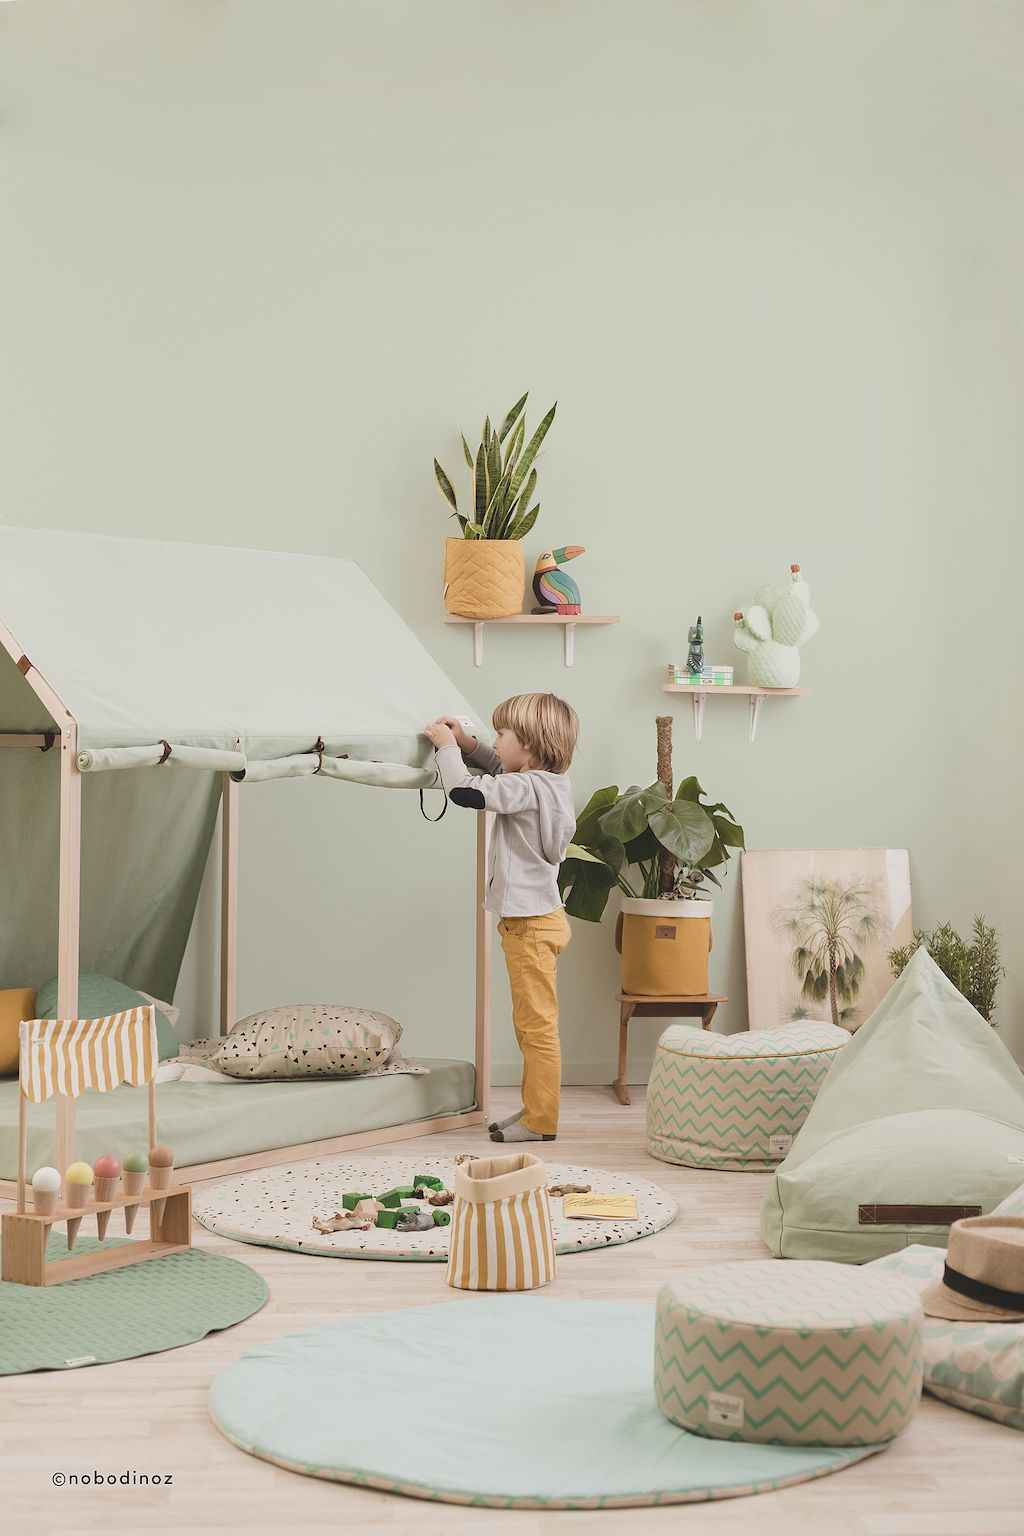 Awesome ideas bedroom for kids (59)